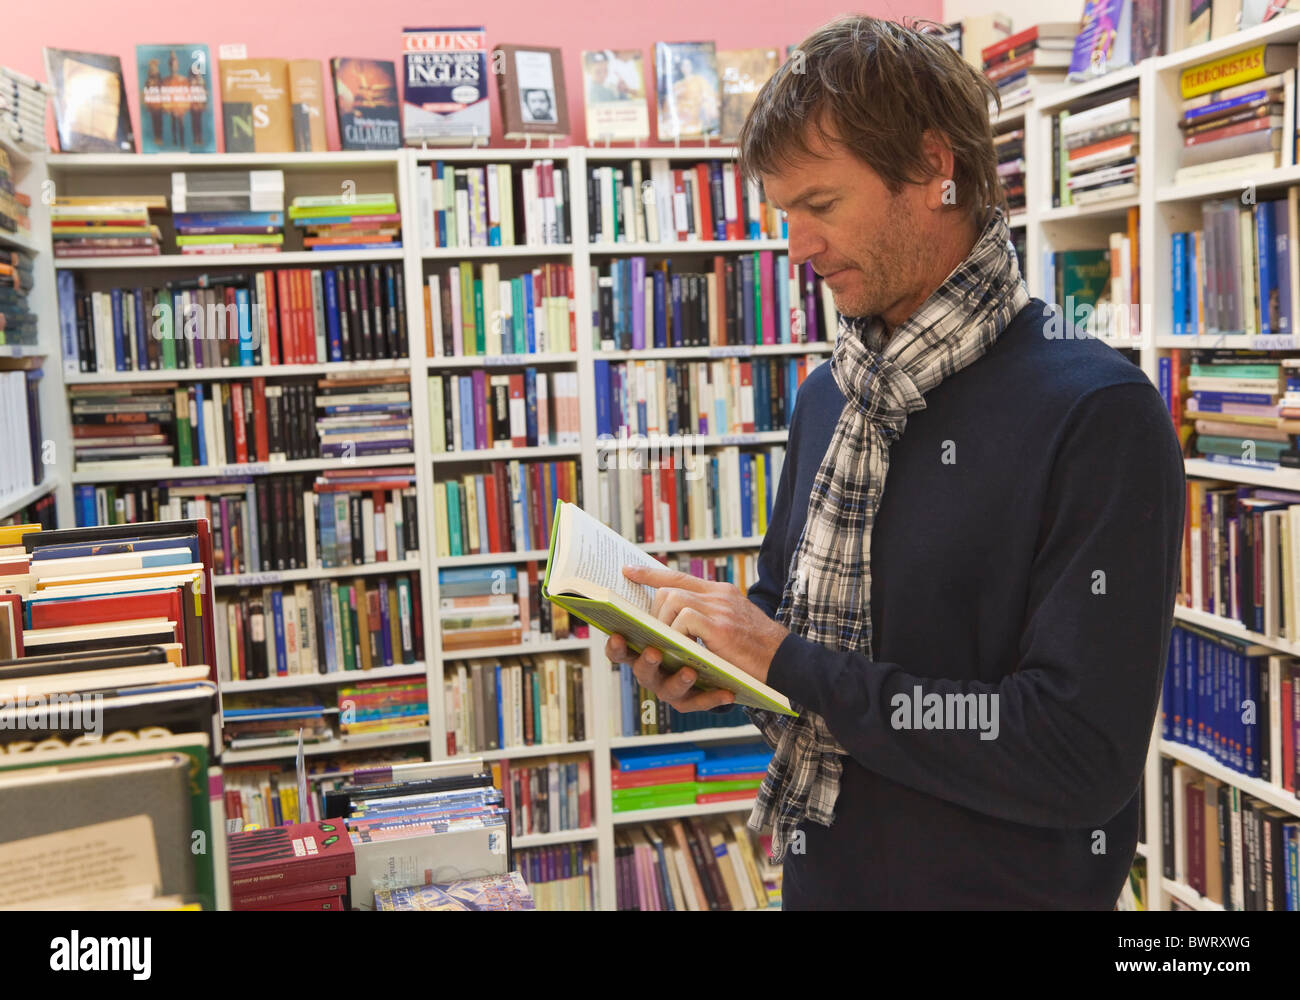 Forty year old man reading in second hand book shop. - Stock Image